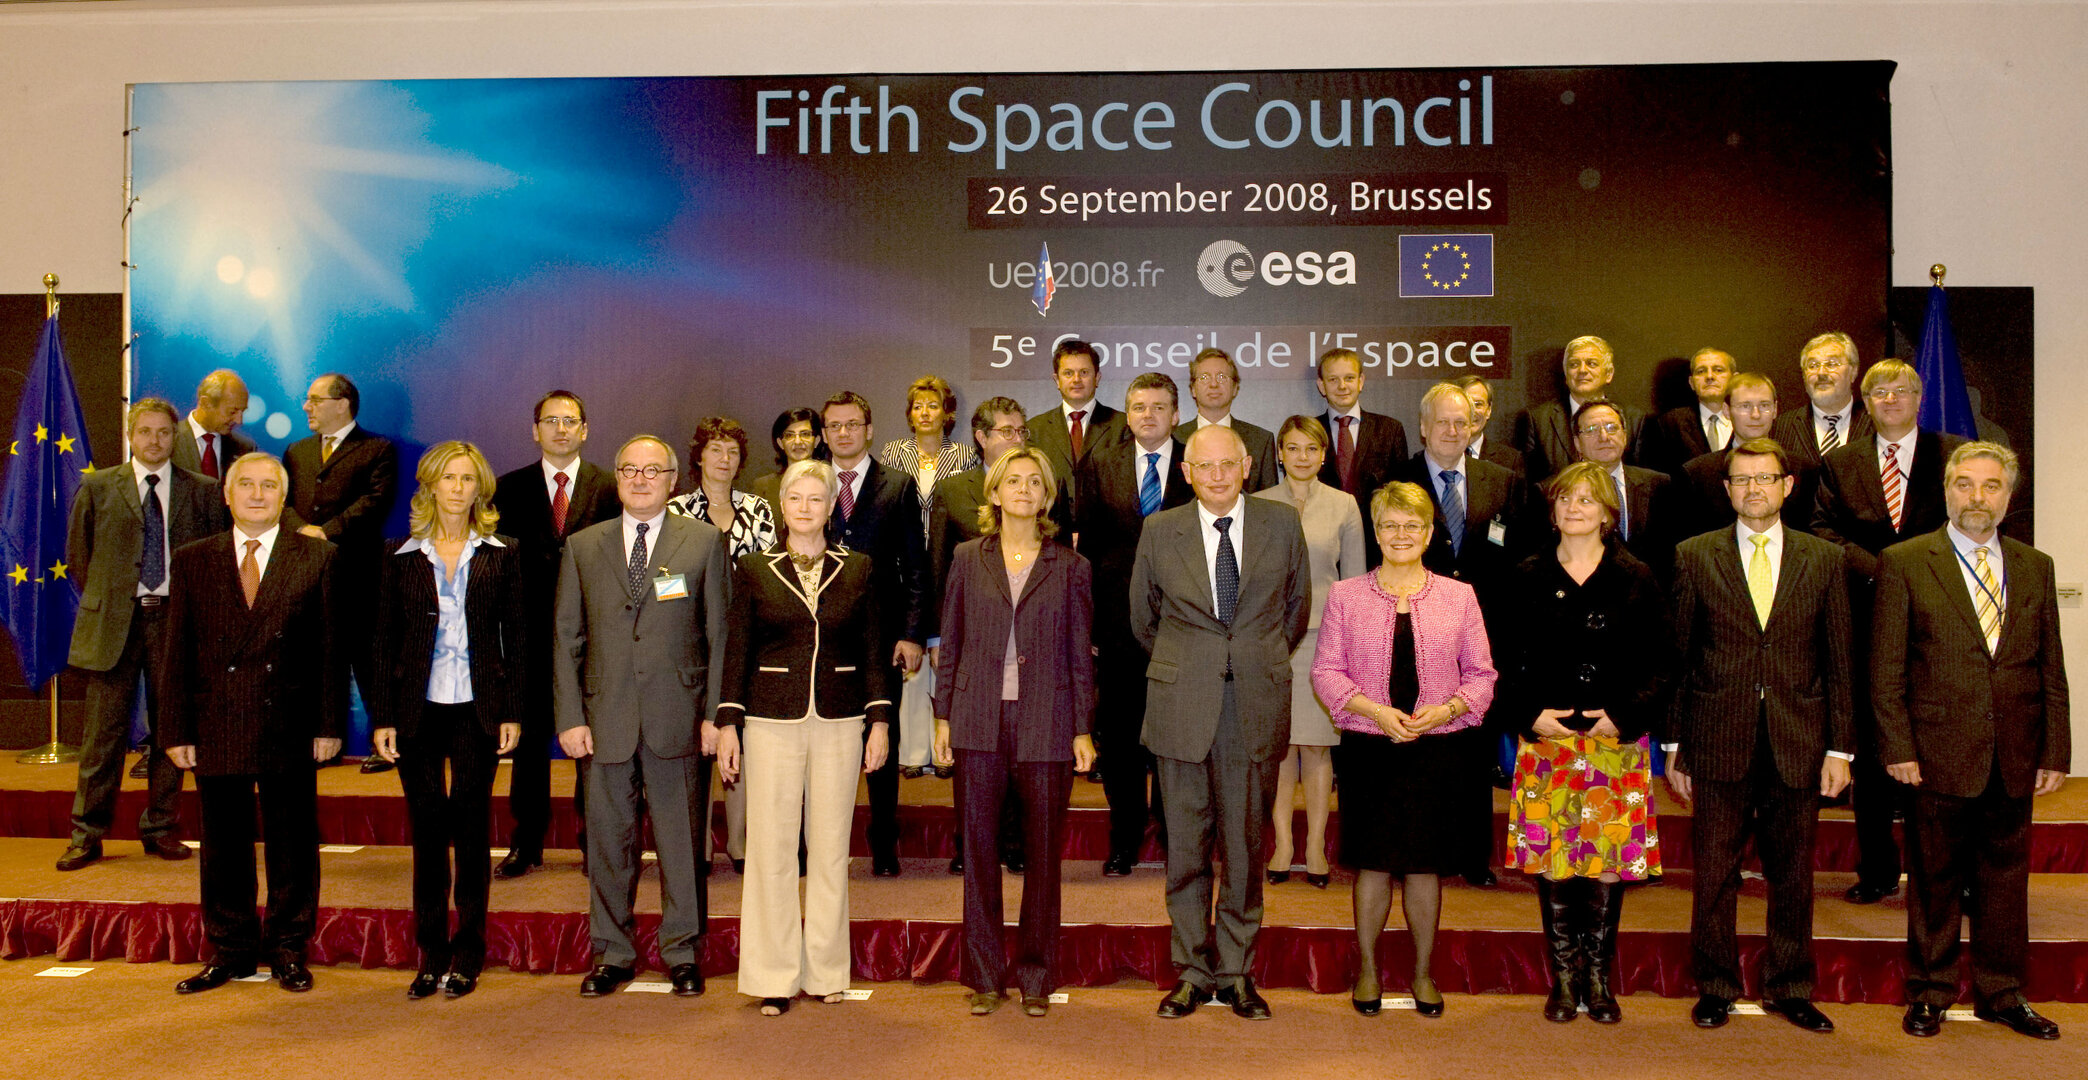 Ministers met in Brussels for the fifth Space Council